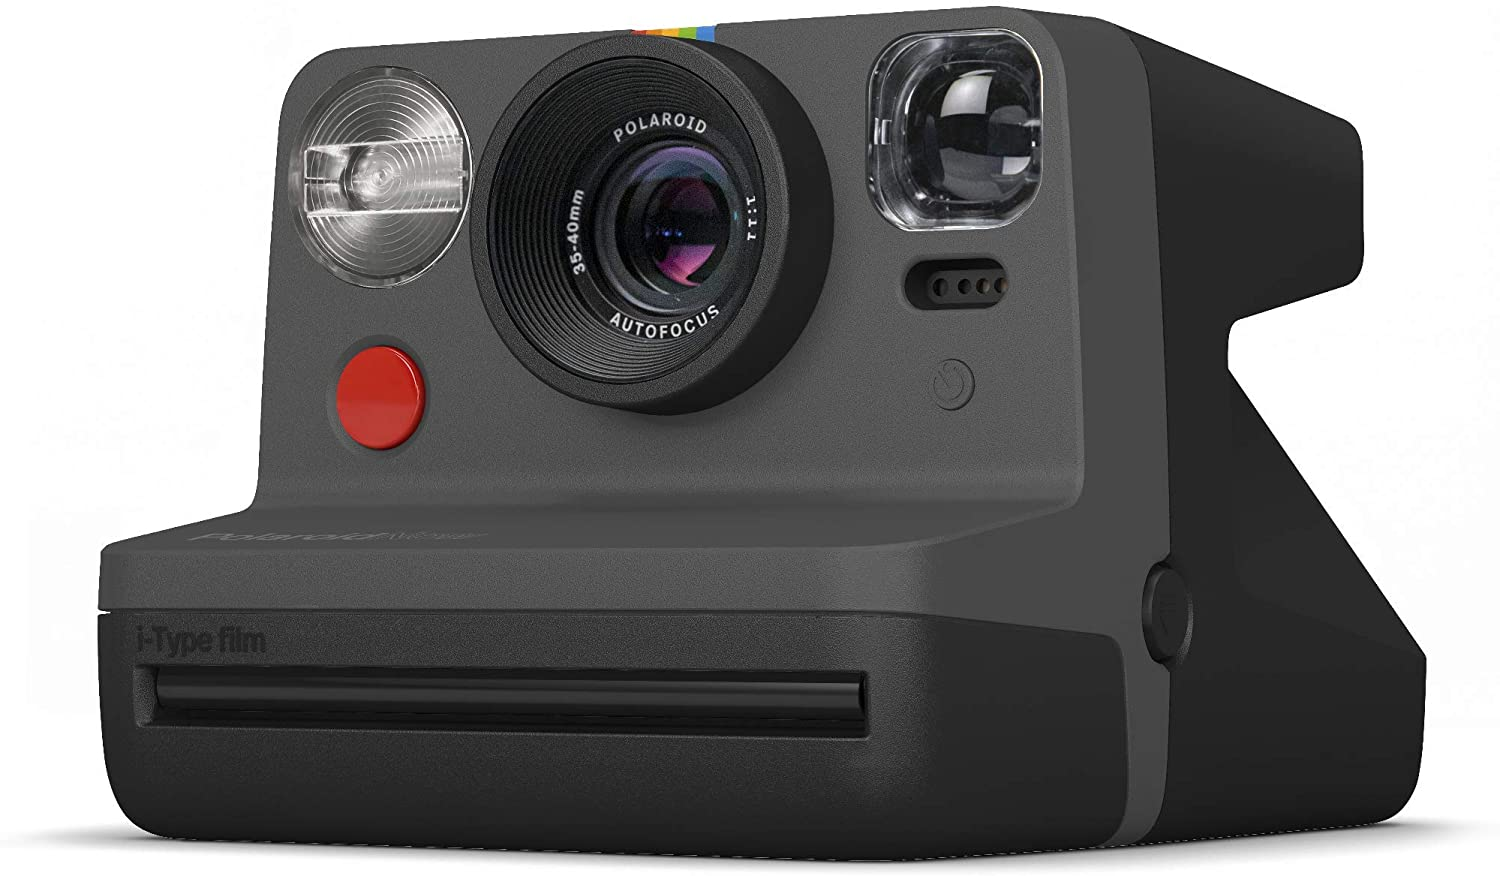 Best Gifts for dad 2020 - polaroid instant camera